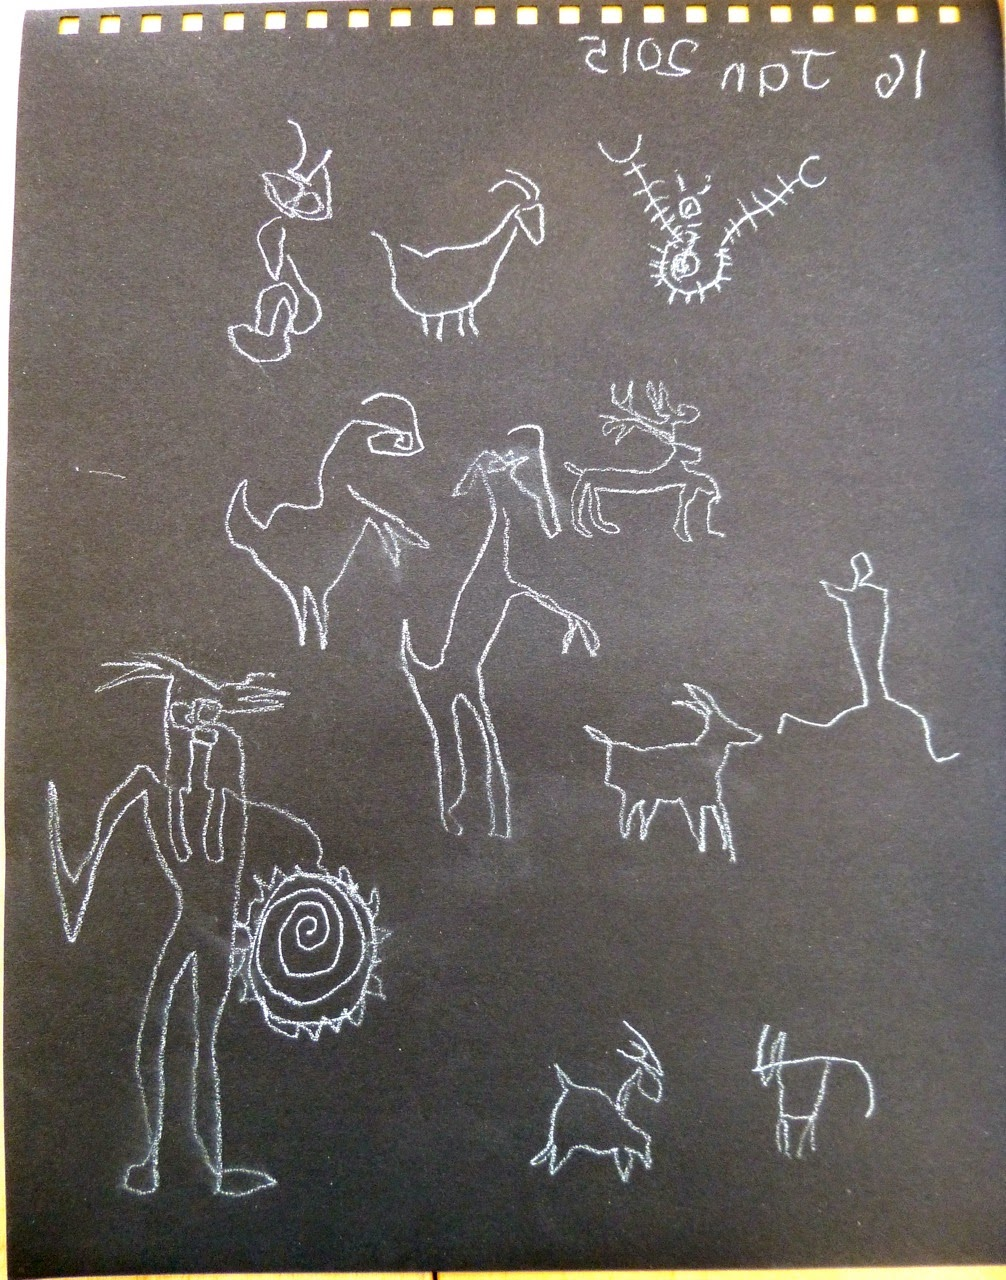 Rock art white on black drawn with left hand whilst drawing...